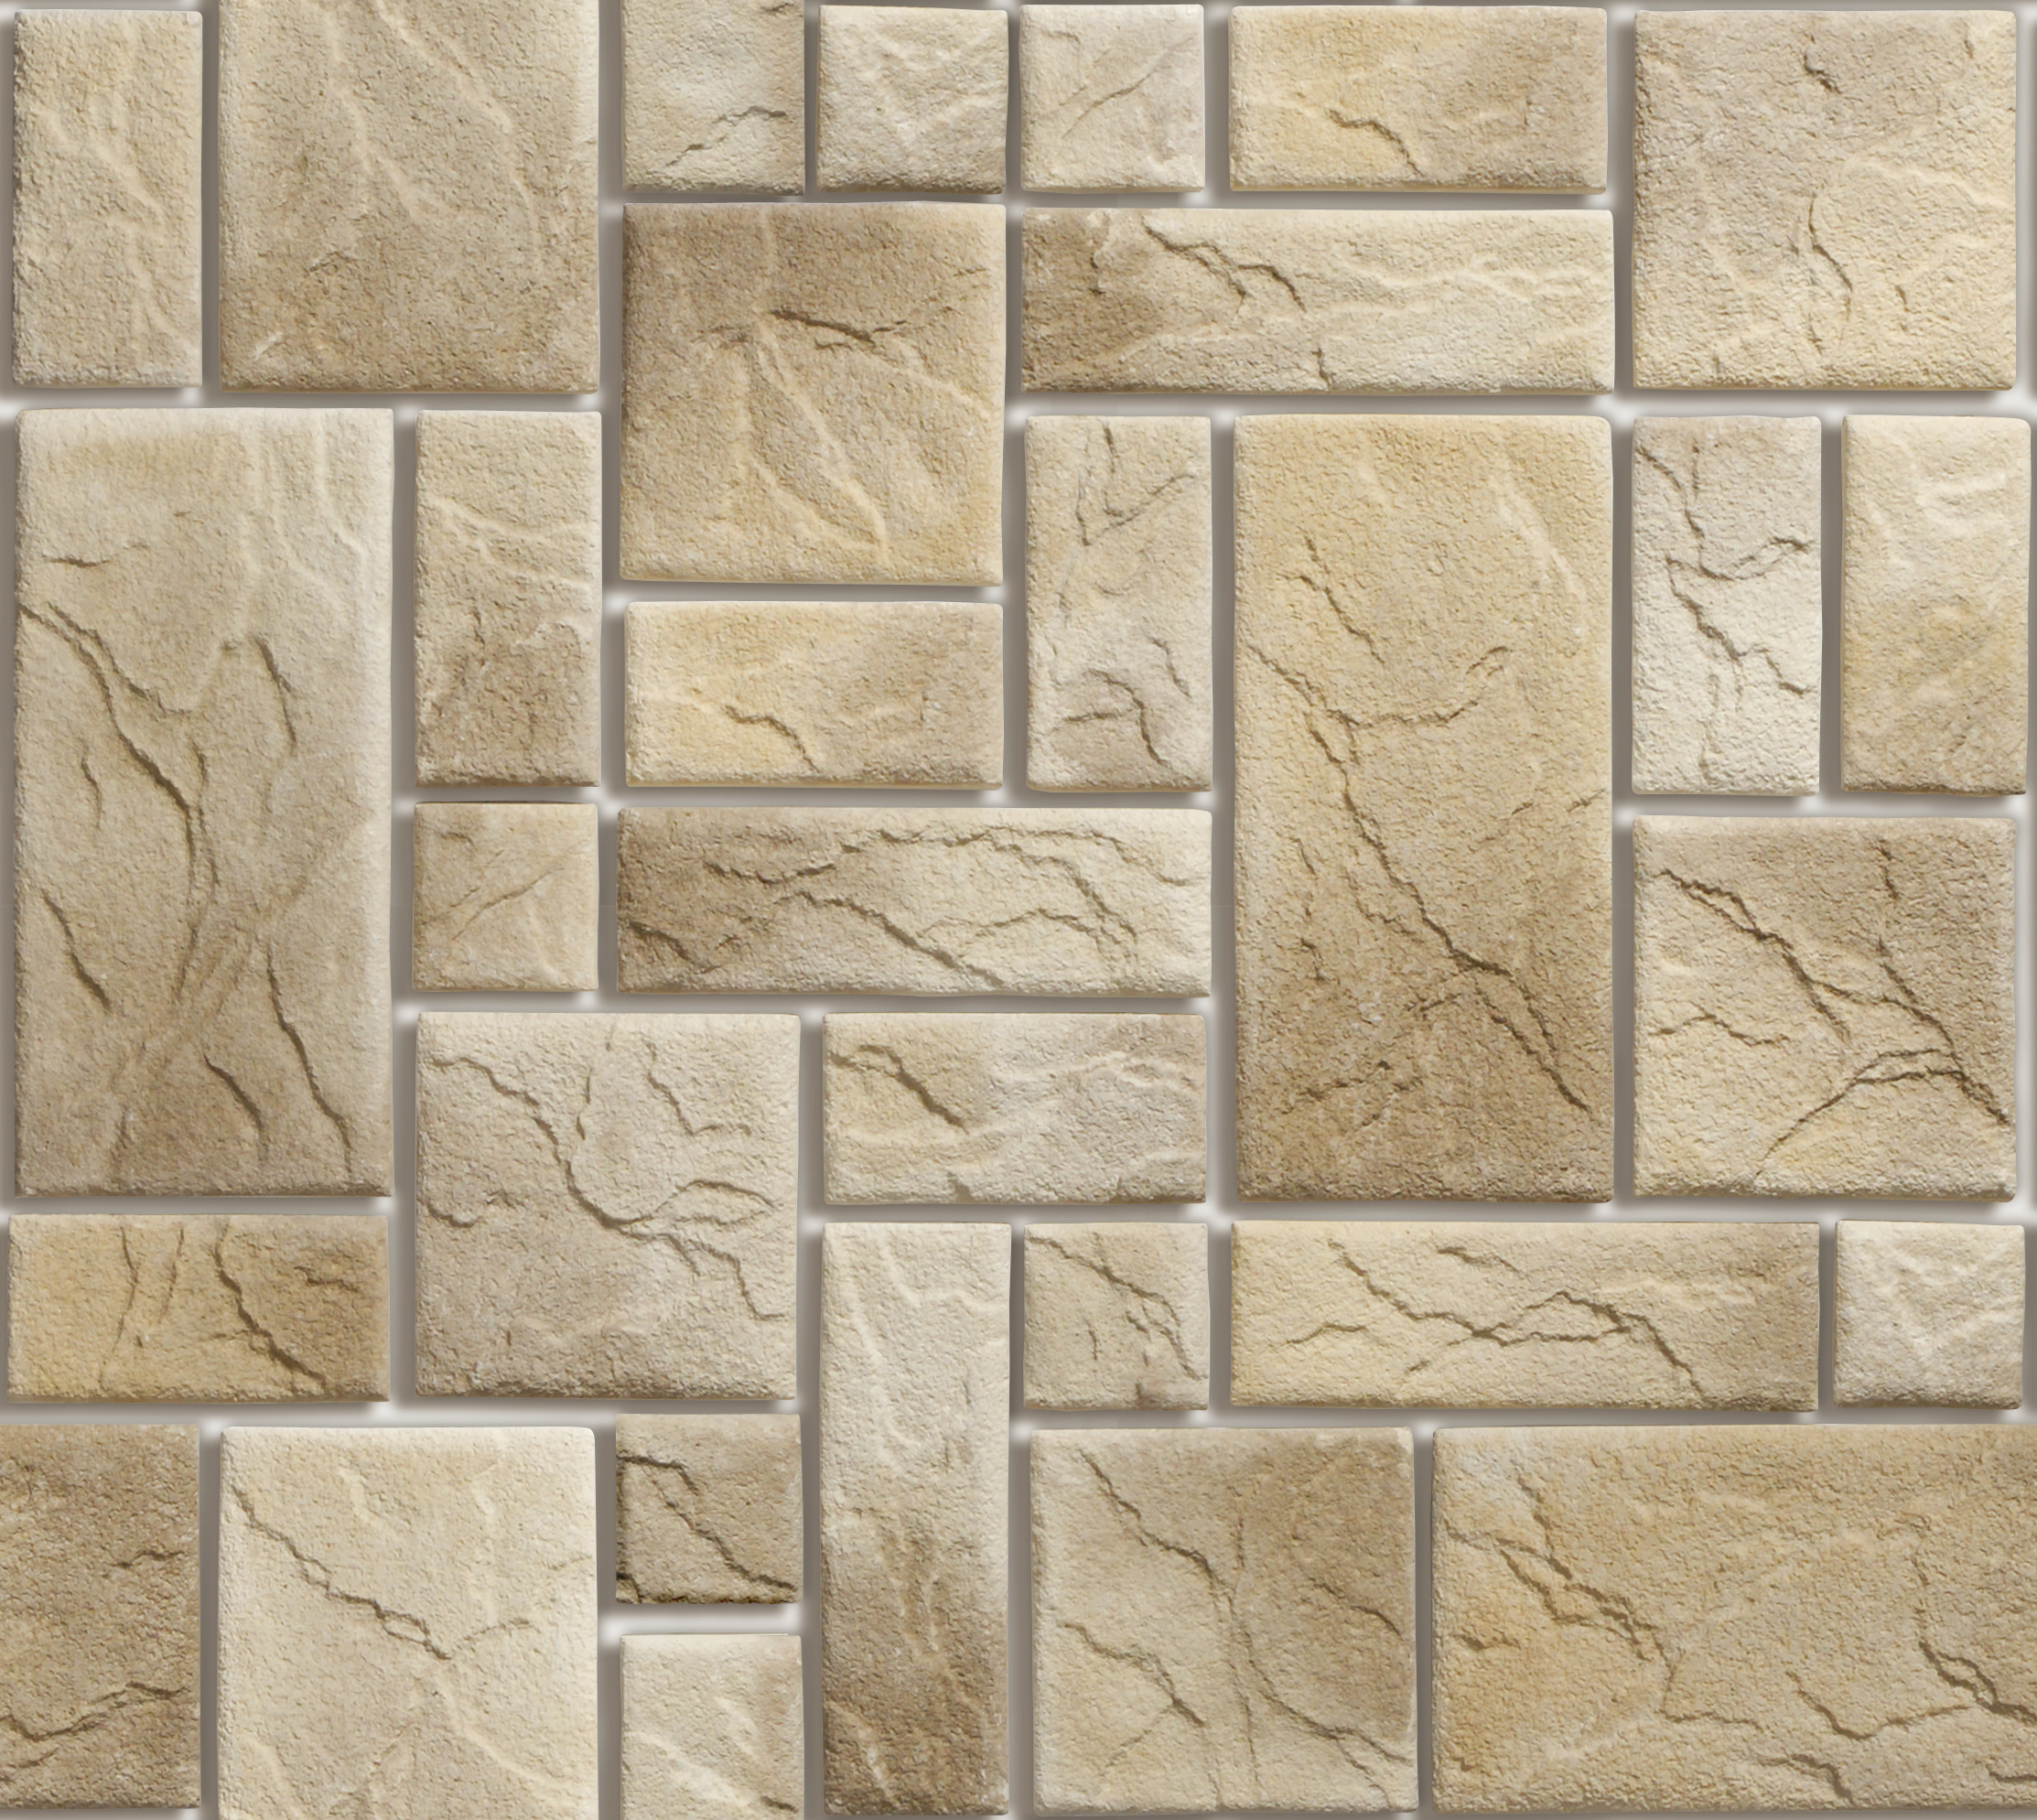 simple-design-stunning-wall-tiles-for-a-kitchen-wall-tiles-for-kitchen-backsplash-wall-tiles-for-kitchens-wall-tiles-for-kitchen-backsplash-wall-tile-for-kitchens-wall-tiles-for-walnut-kitchen